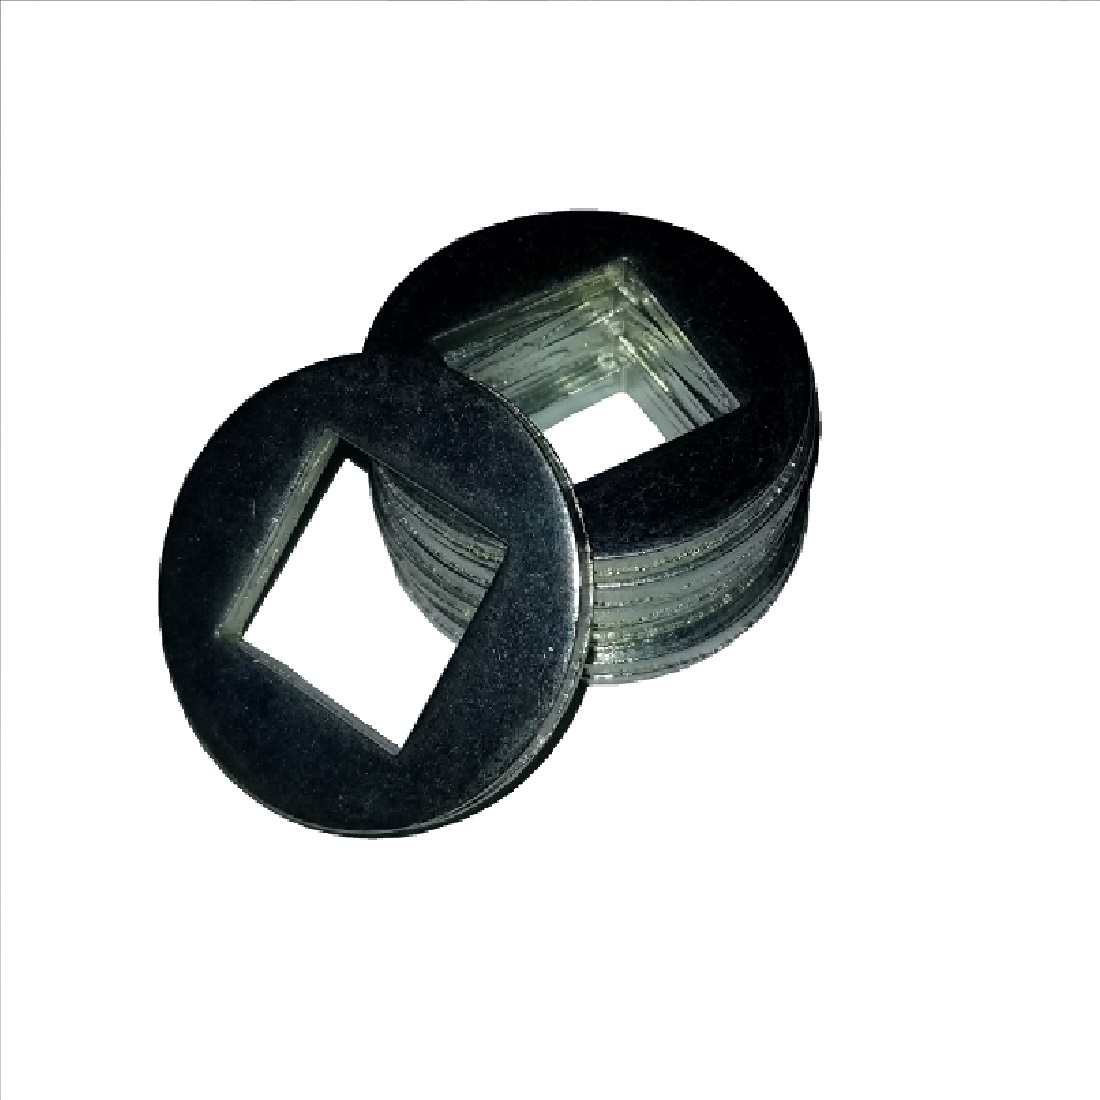 Square ID Washer - 0.765 ID, 1.250 OD, 0.060 Thick, Low Carbon Steel - Soft